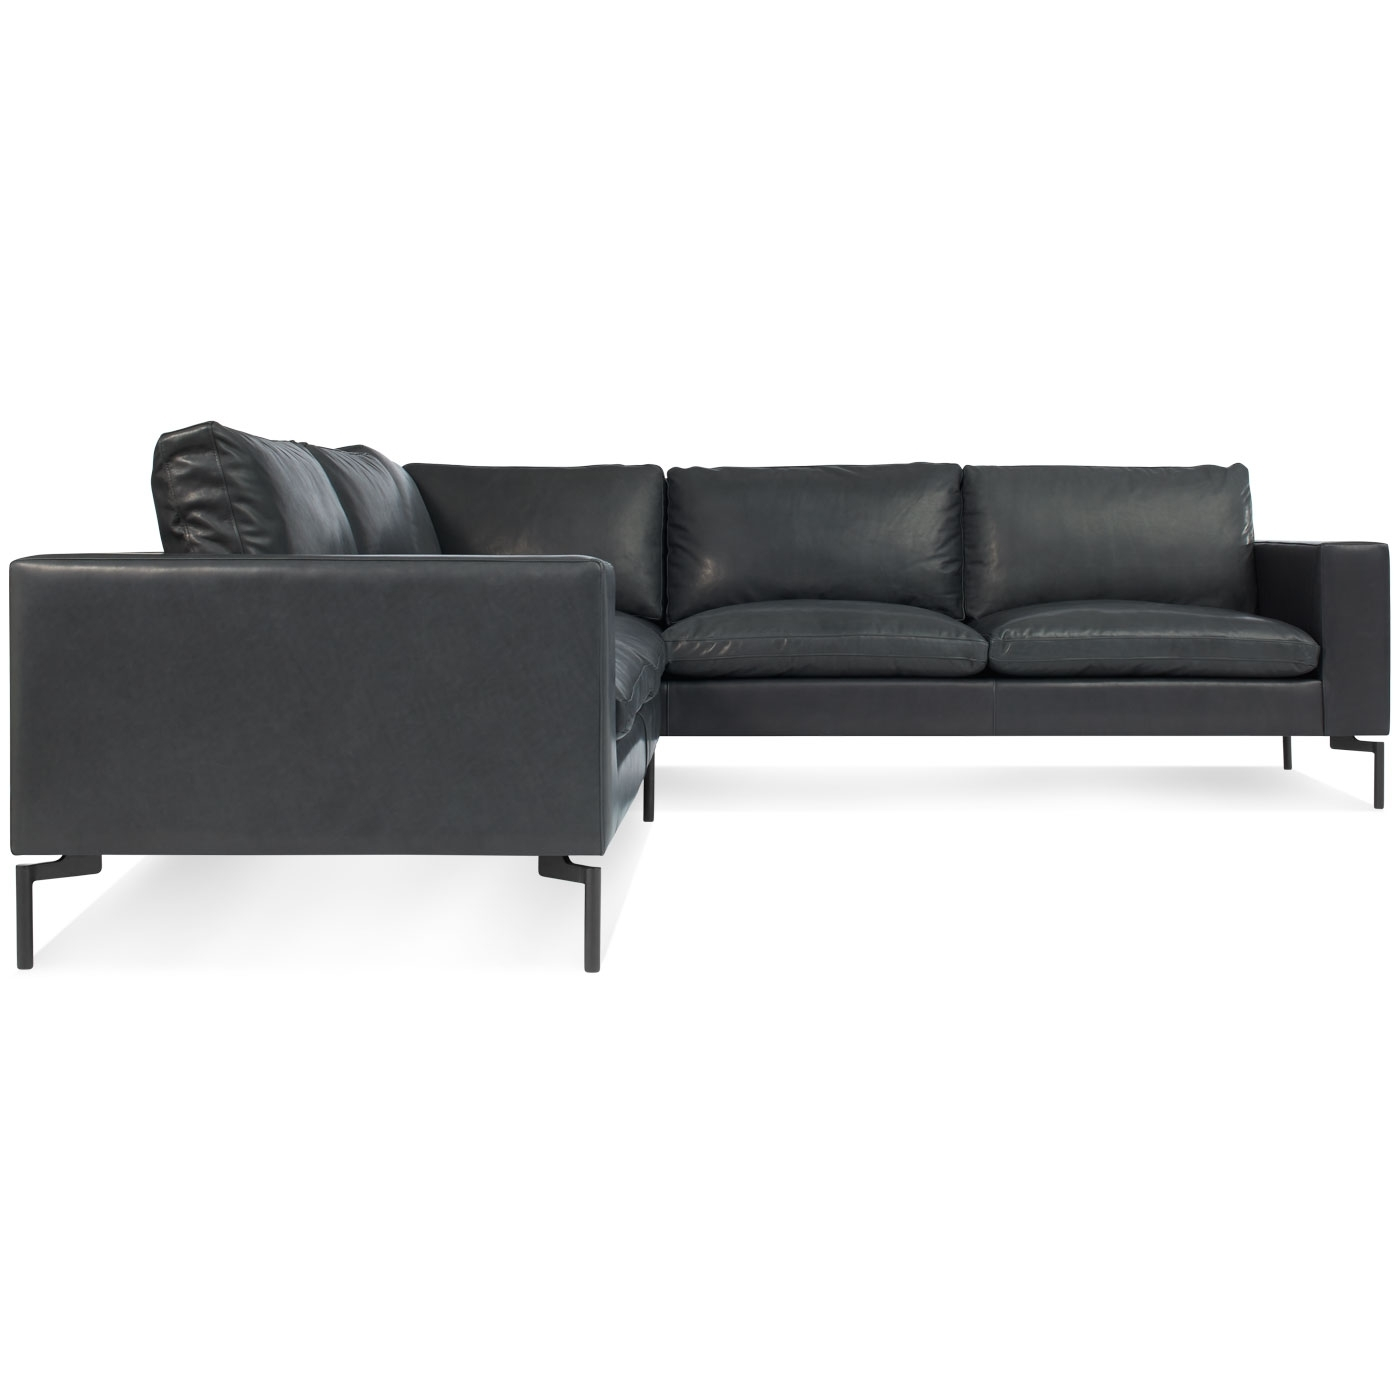 Newfoundland Sectional Sofas Inside Best And Newest New Standard Small Leather Sectional – Modern Leather Sofa (View 10 of 15)